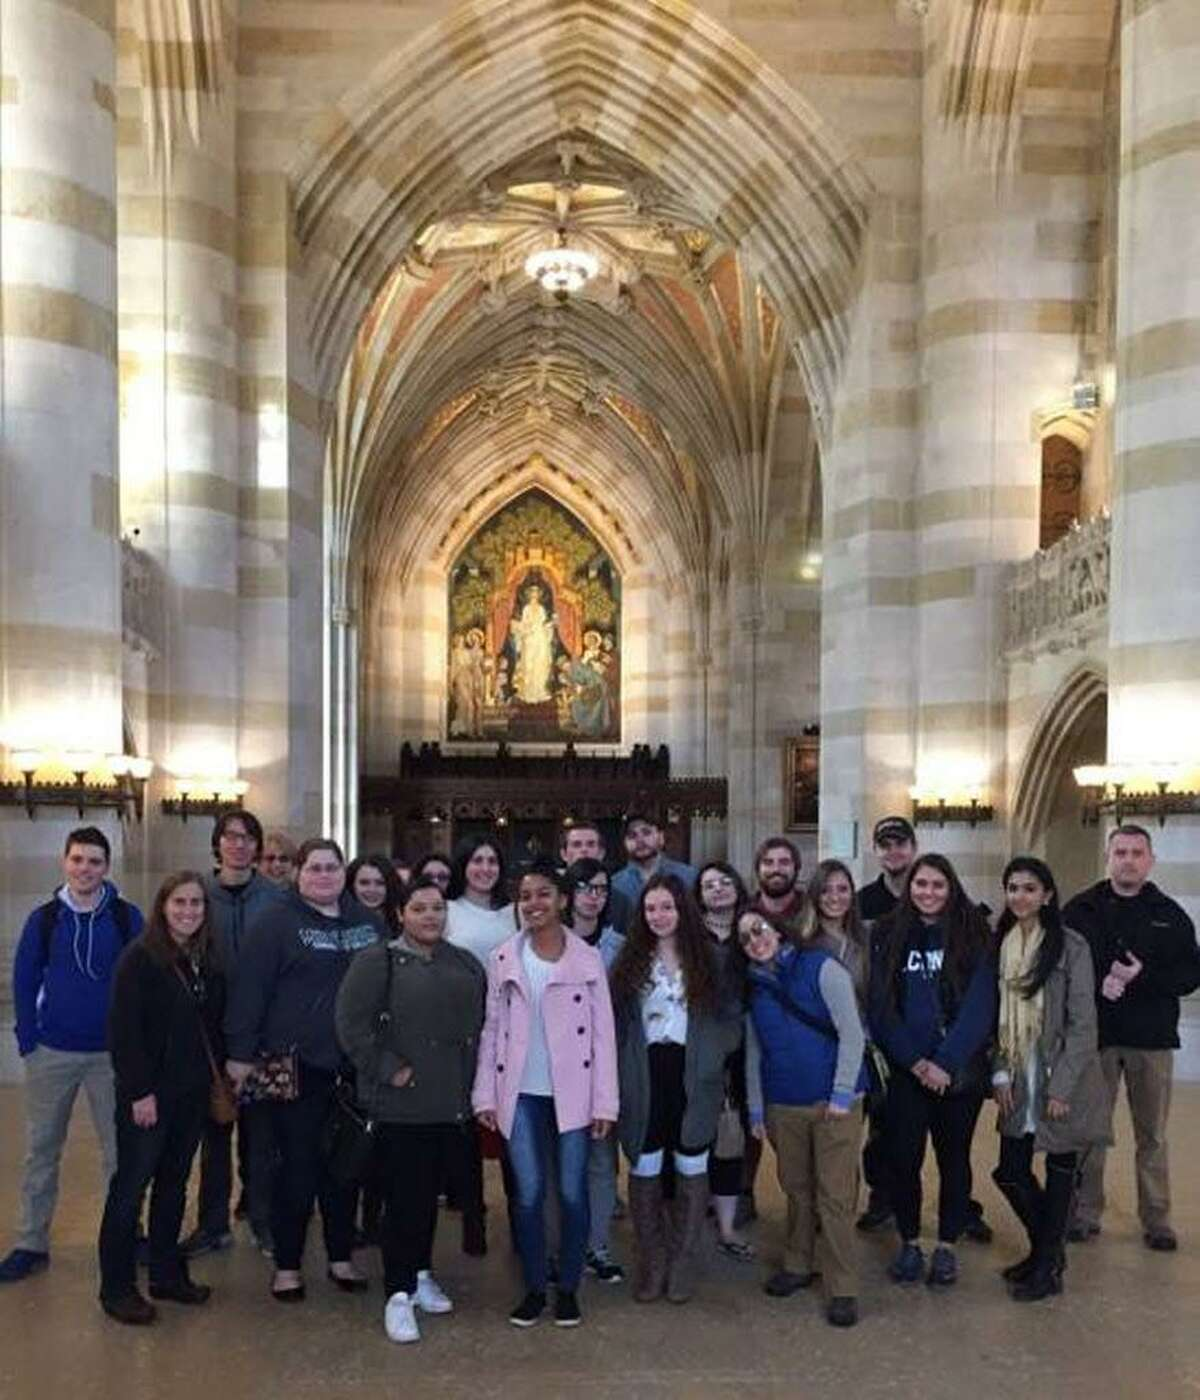 Associate Professor of English Eva Jones, coordinator of the program at Middlesex Community College in Middletown, and an admissions tour guide from Yale led the students on a private tour of the main campus.